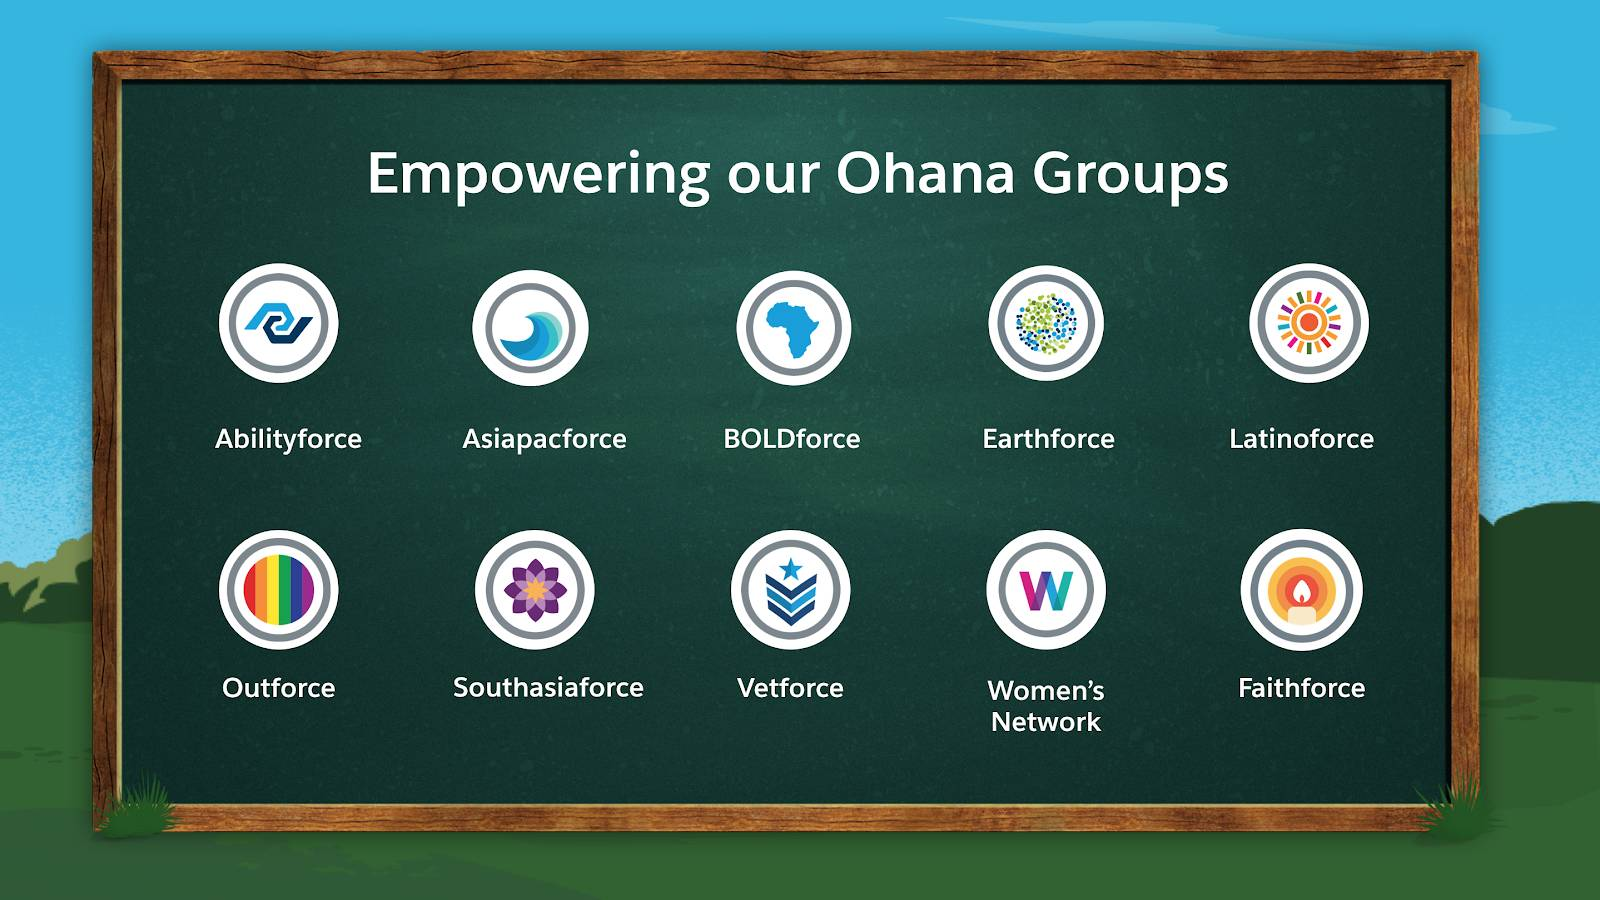 Photo of all the Ohana Group logos